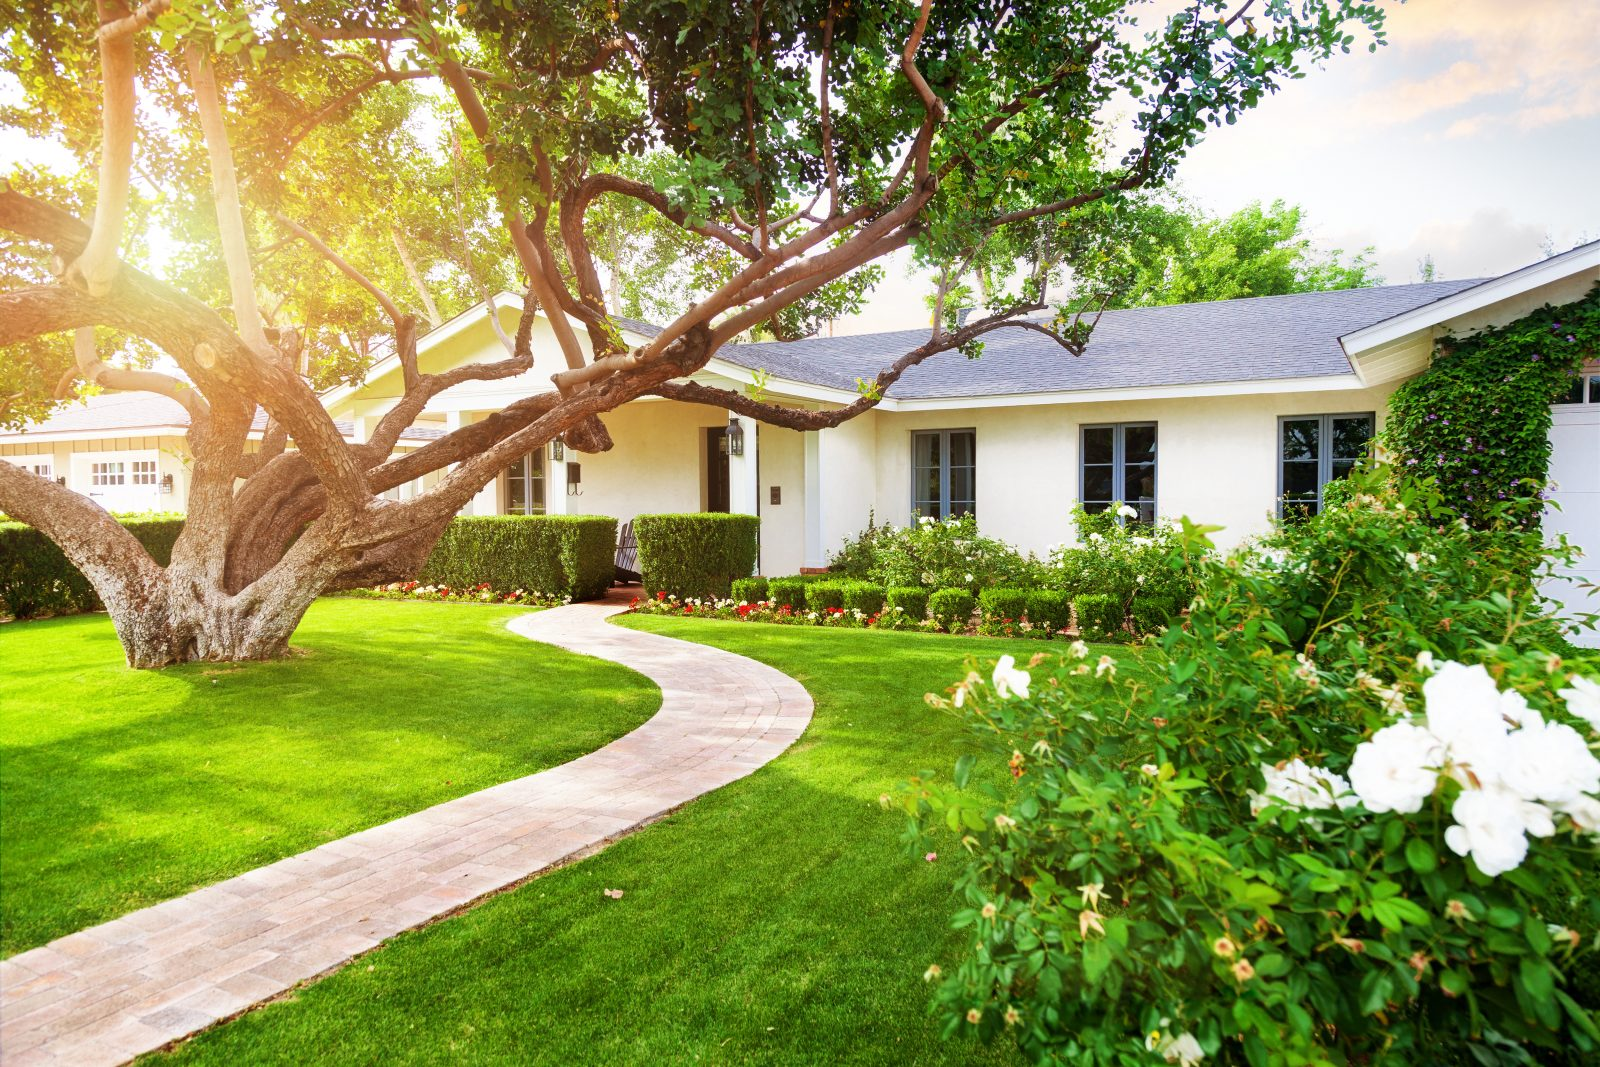 Beautiful white color single family home in USA with big green grass yard, large tree and roses